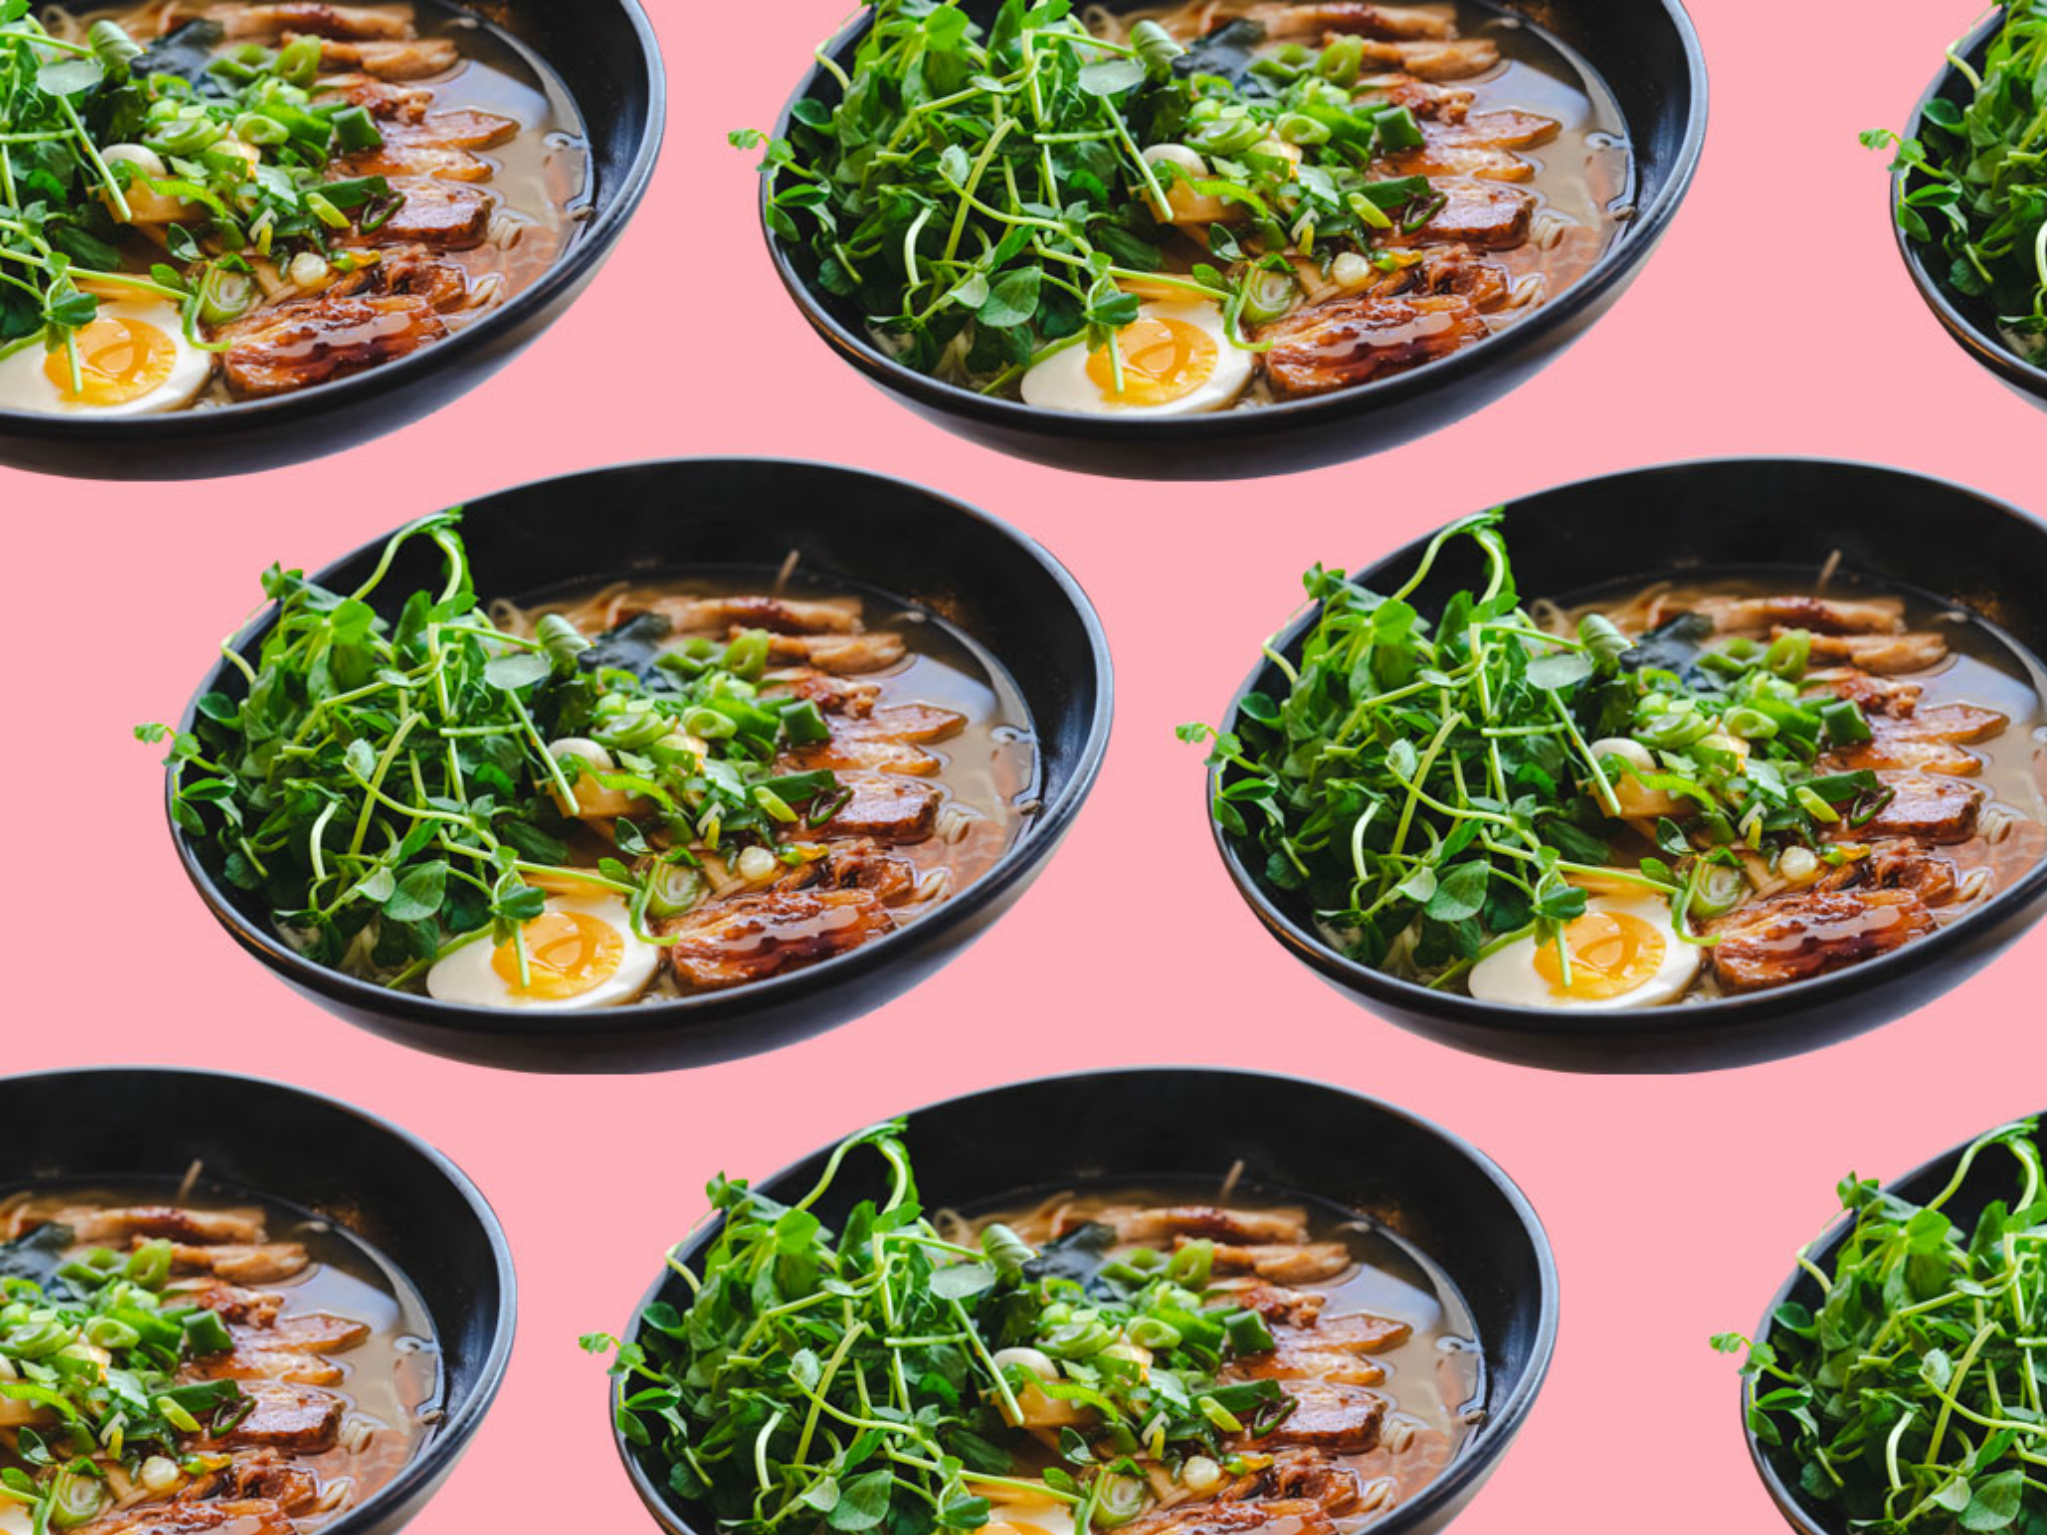 Wagamama has launched a cooking channel so you can 'wok from home'